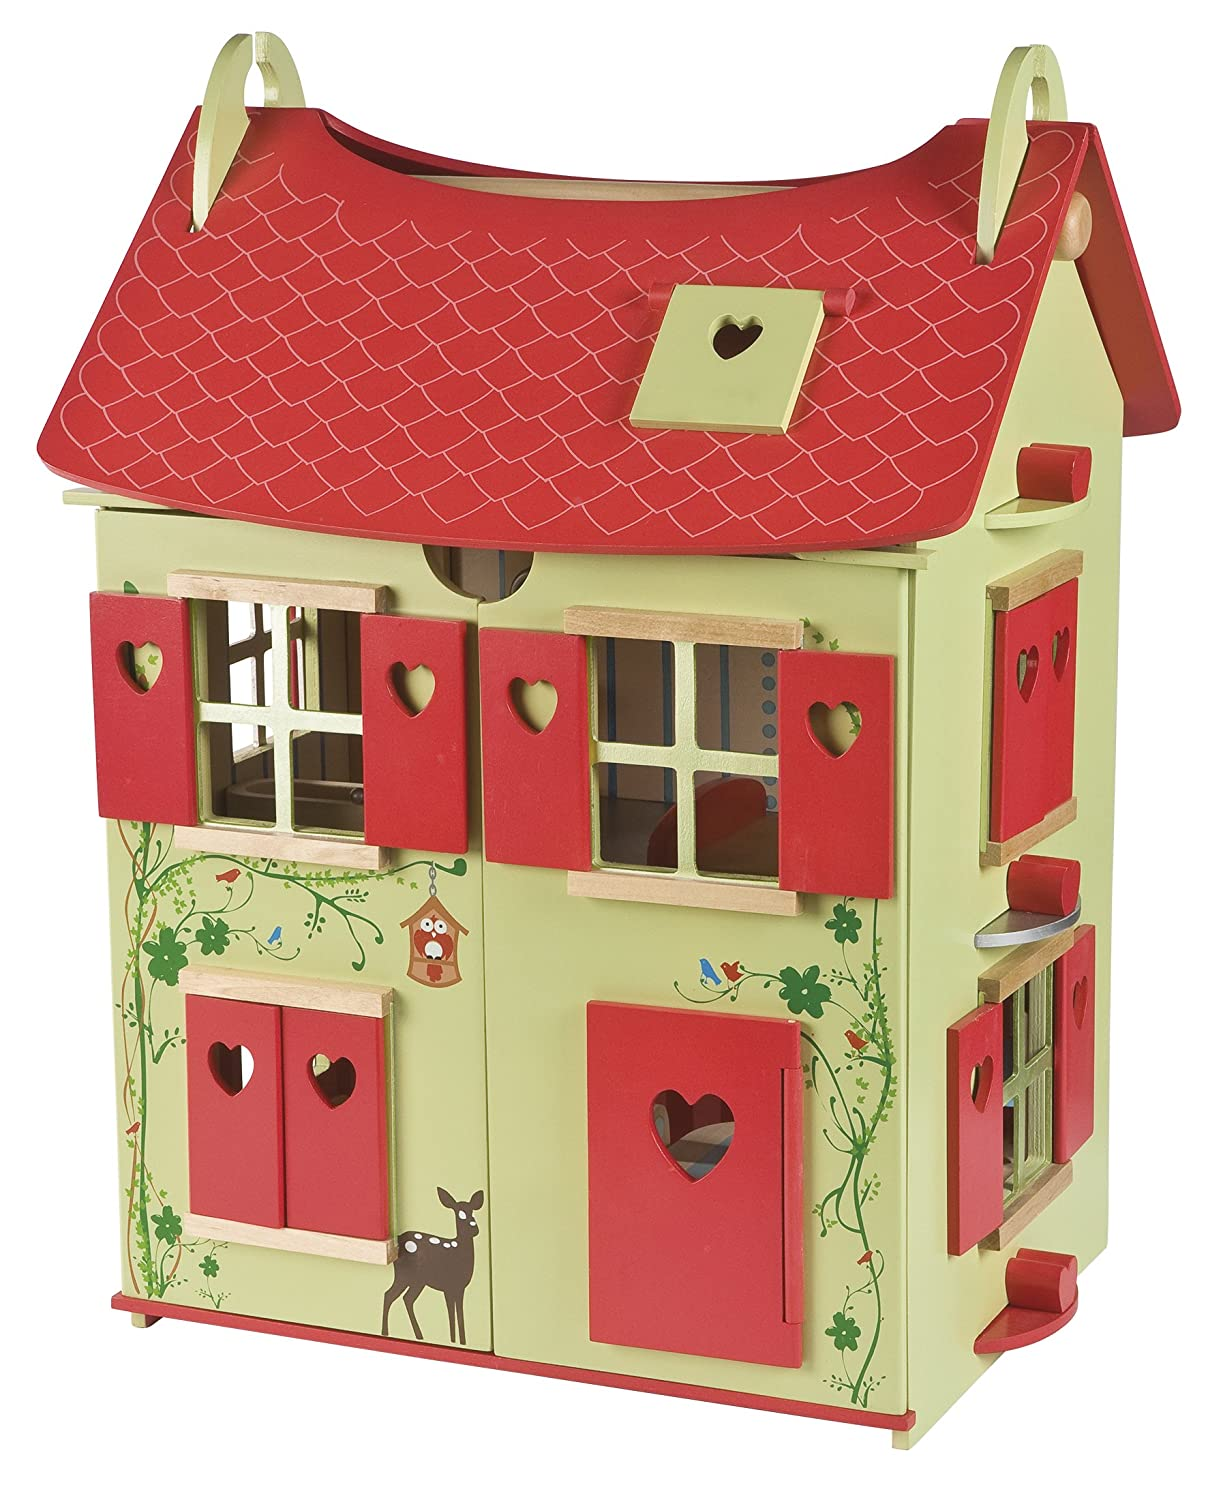 Janod J06585 'Nature' Wooden Doll's House (Red / Green) Juratoys